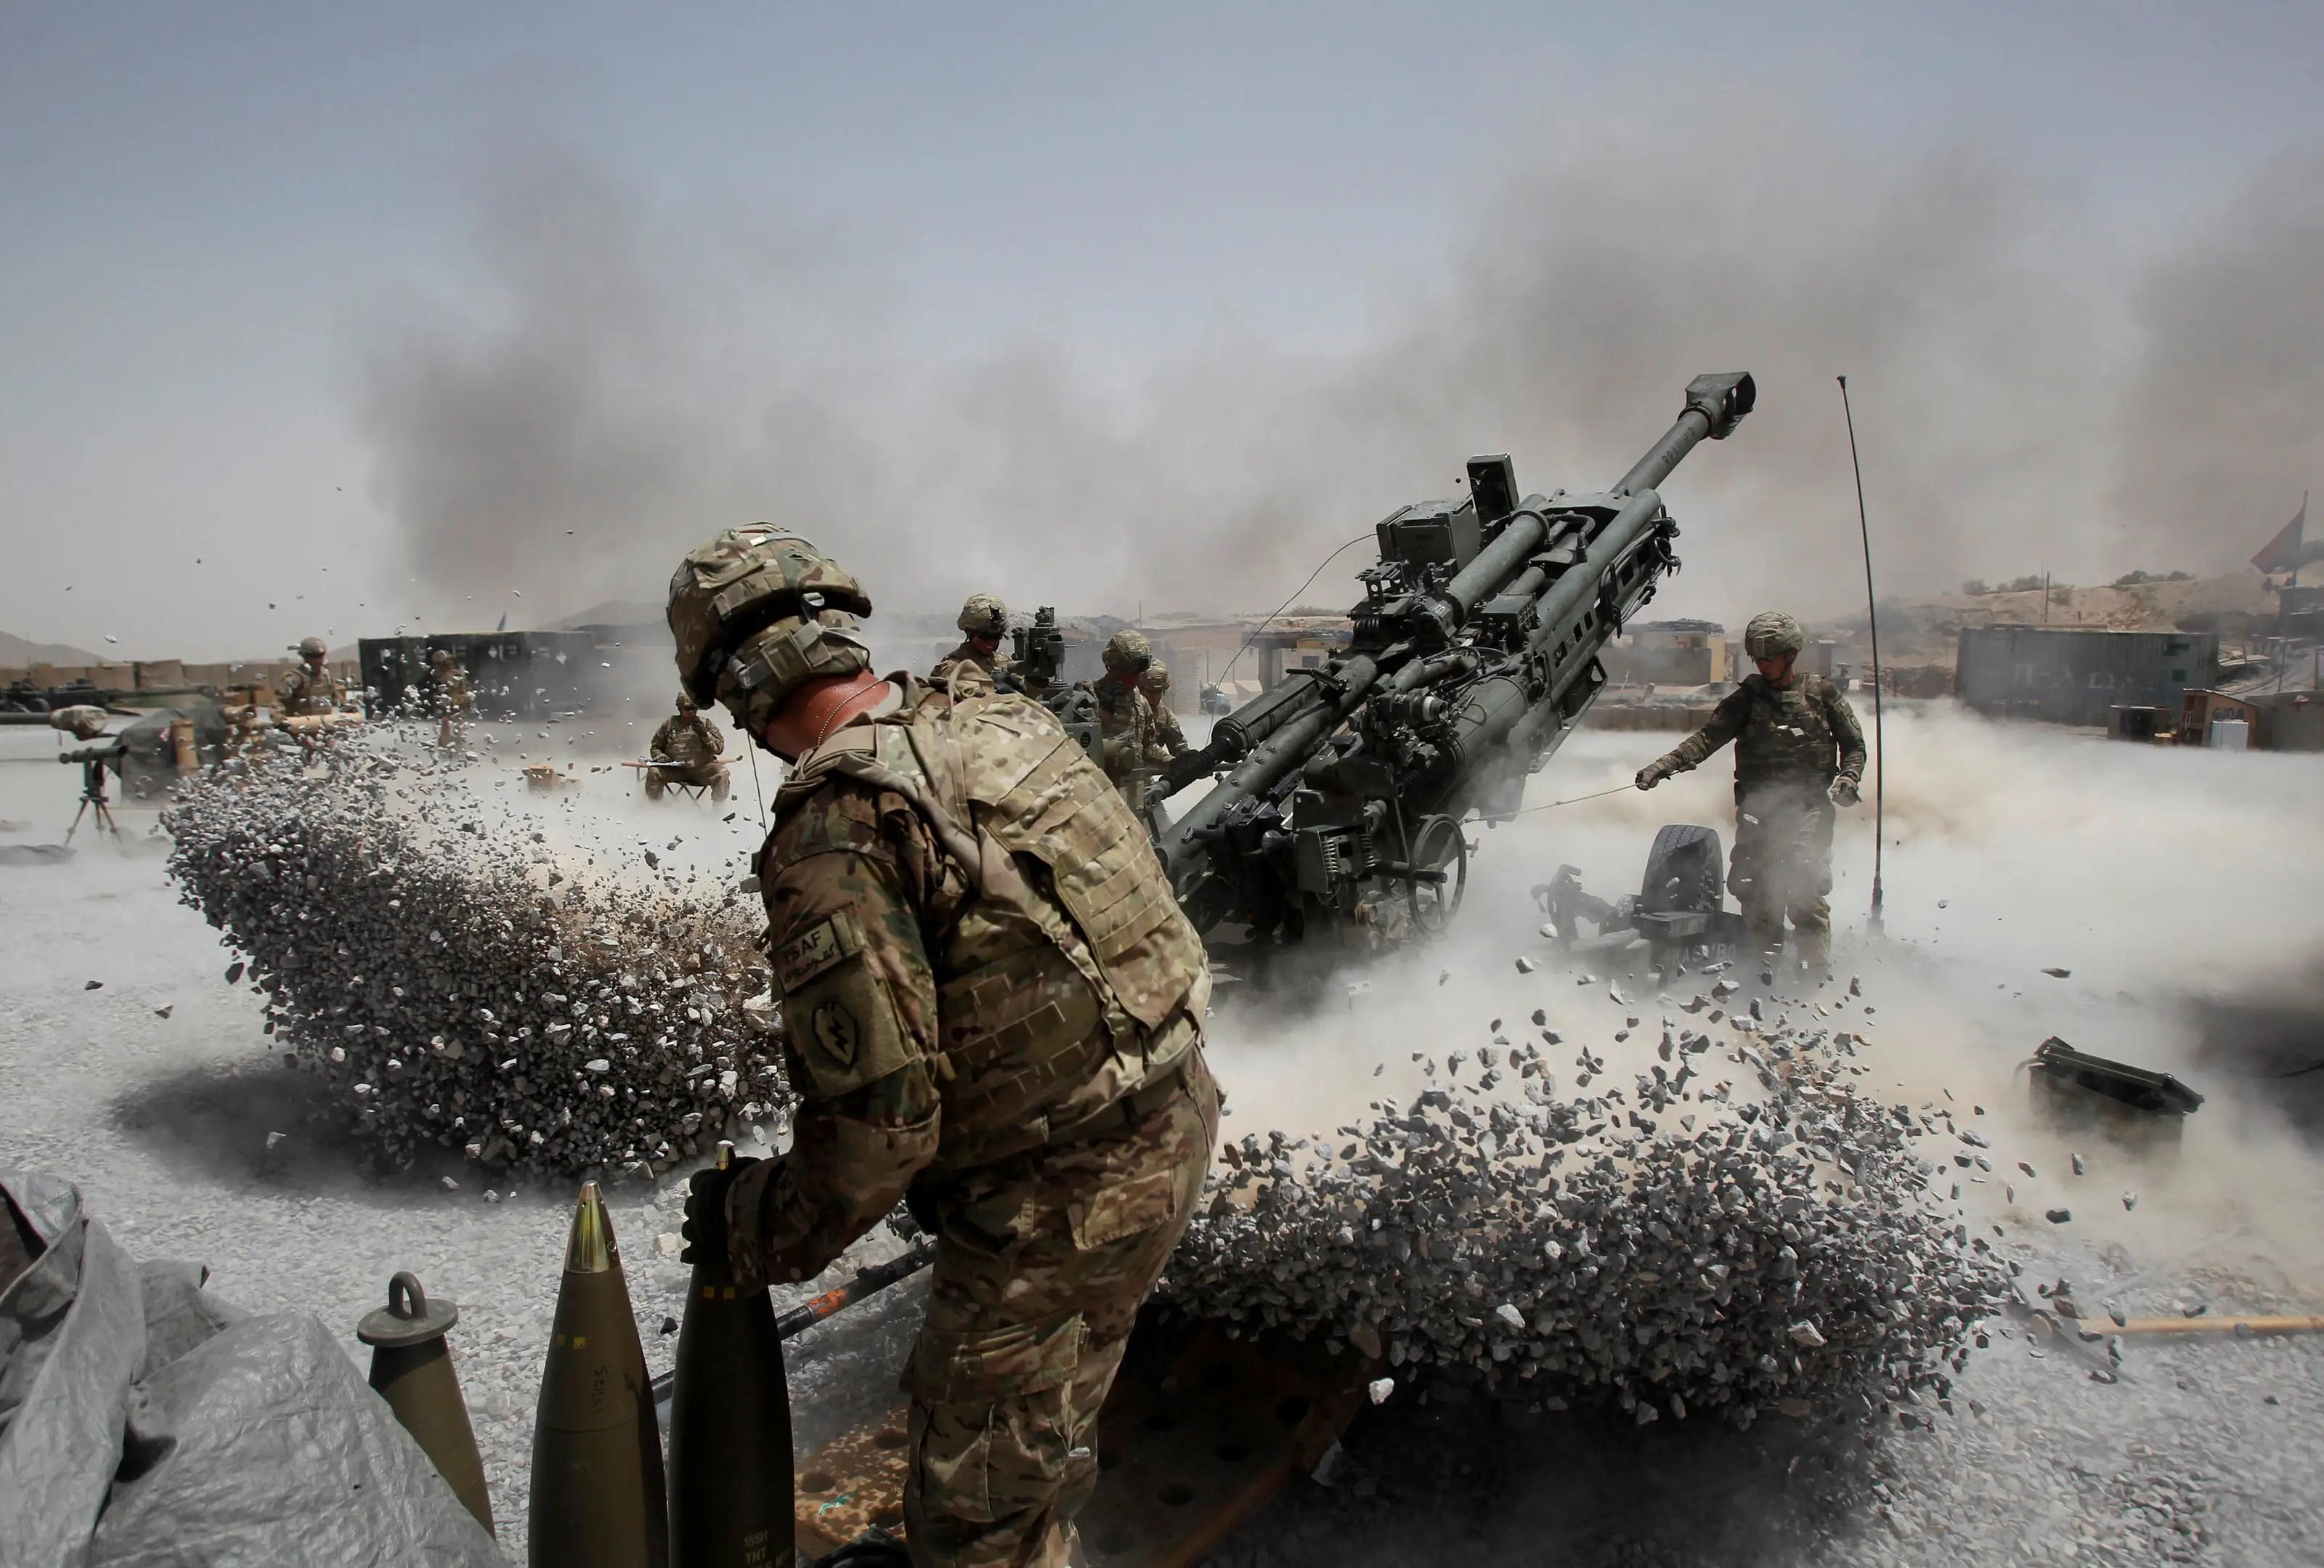 US Army soldiers from the 2nd Platoon, B battery 2-8 field artillery, fire a howitzer artillery piece at Seprwan Ghar forward fire base in Panjwai district, Kandahar province, southern Afghanistan, June 12, 2011.